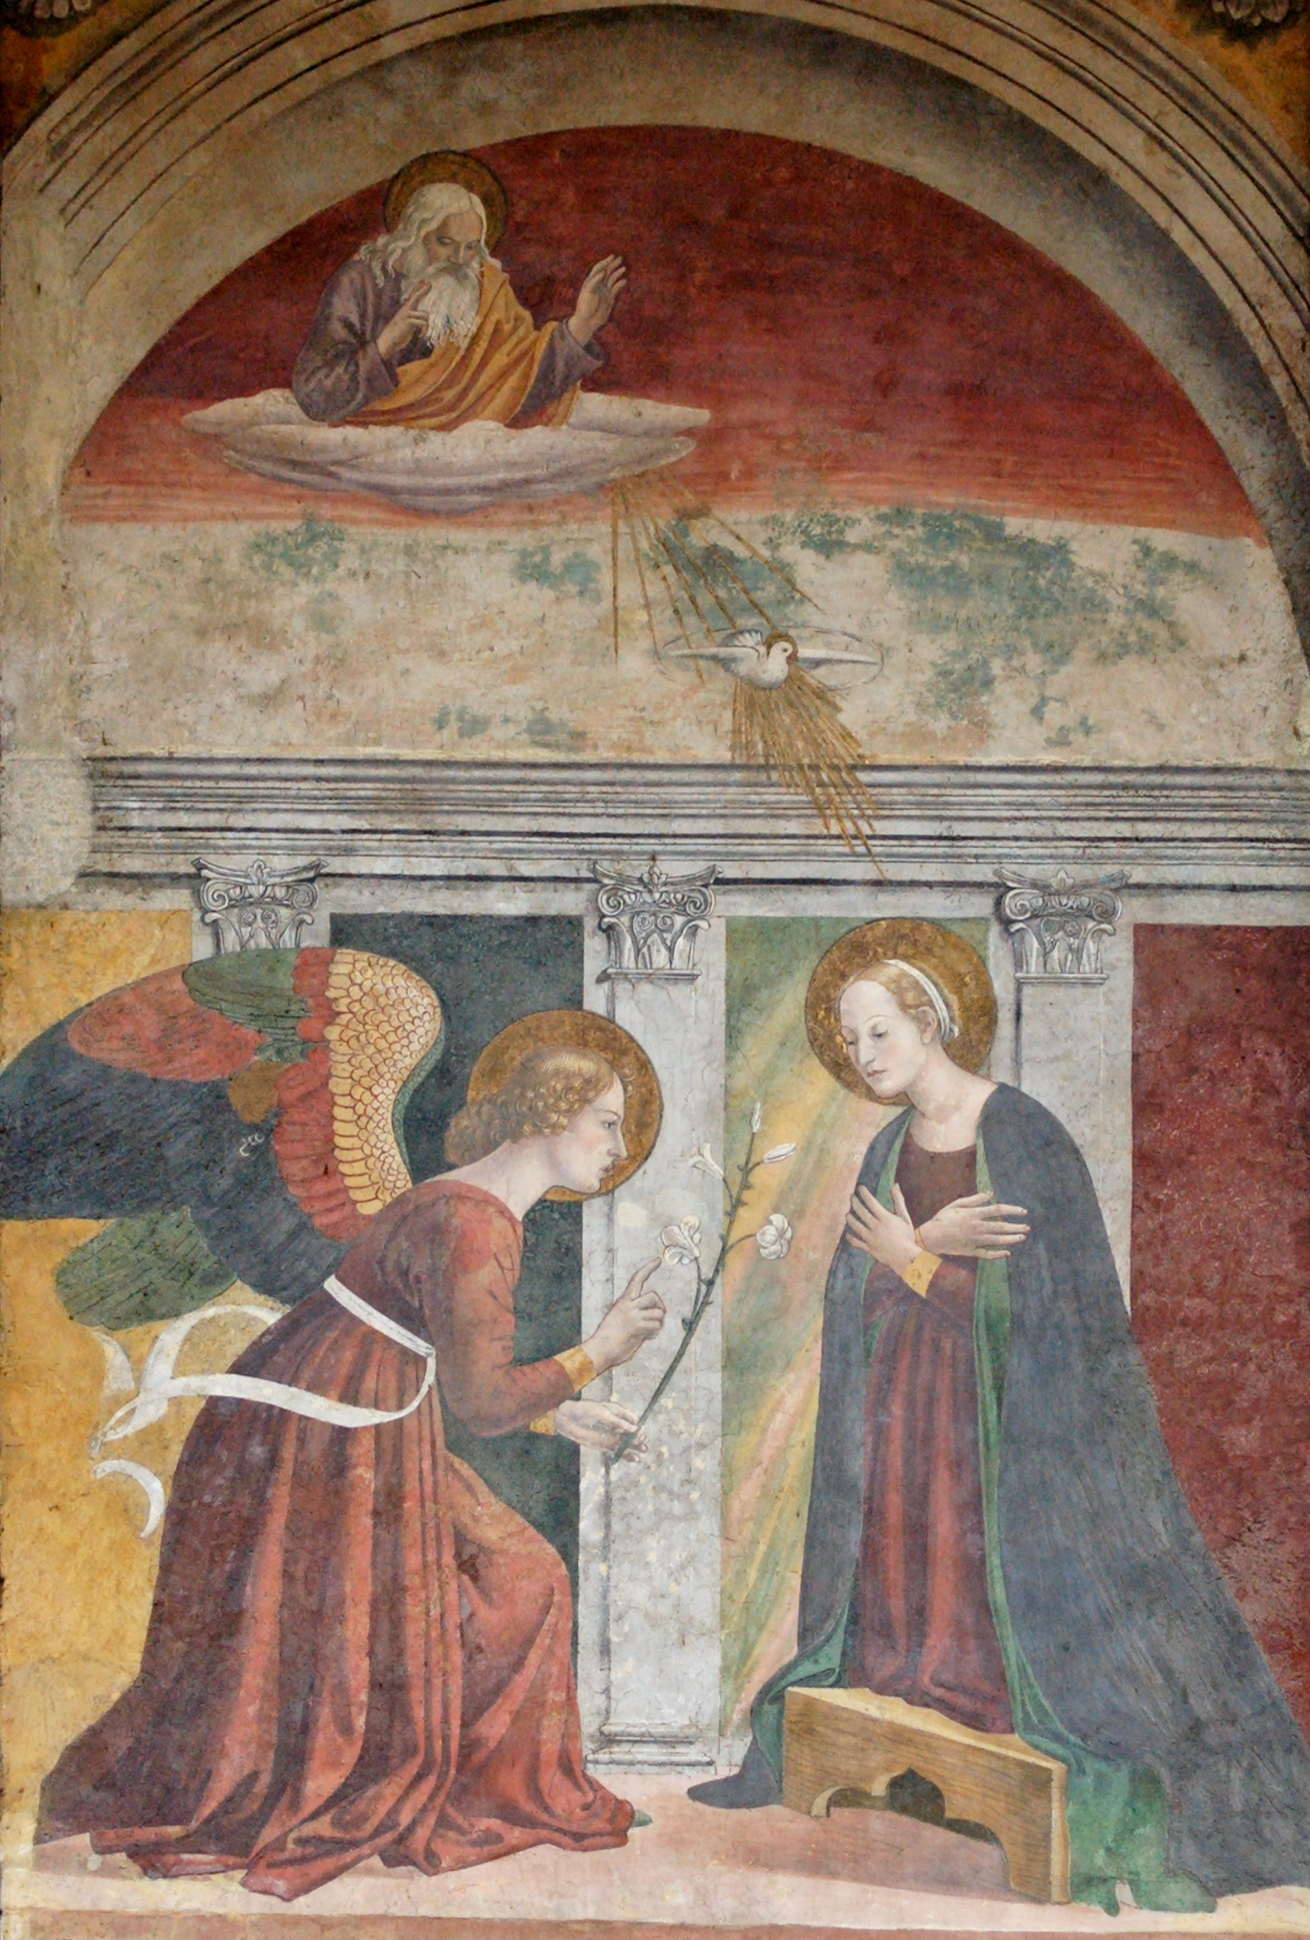 Fresco of the Annunciation at the Pantheon, Rome, 15th century; taken from Wikipedia